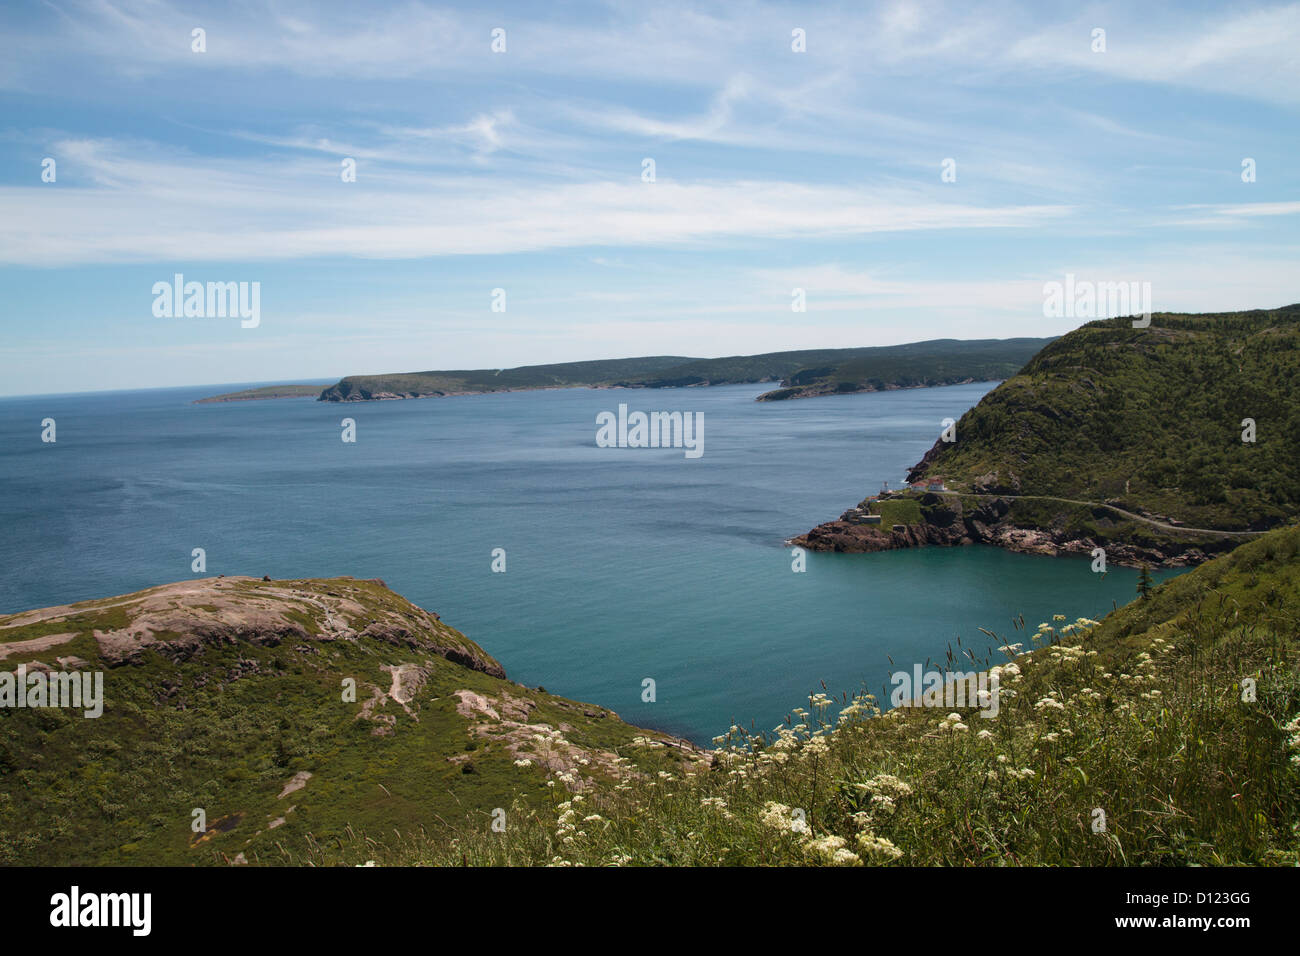 View from Signal Hill, St. John's, Newfoundland, Canada Stock Photo